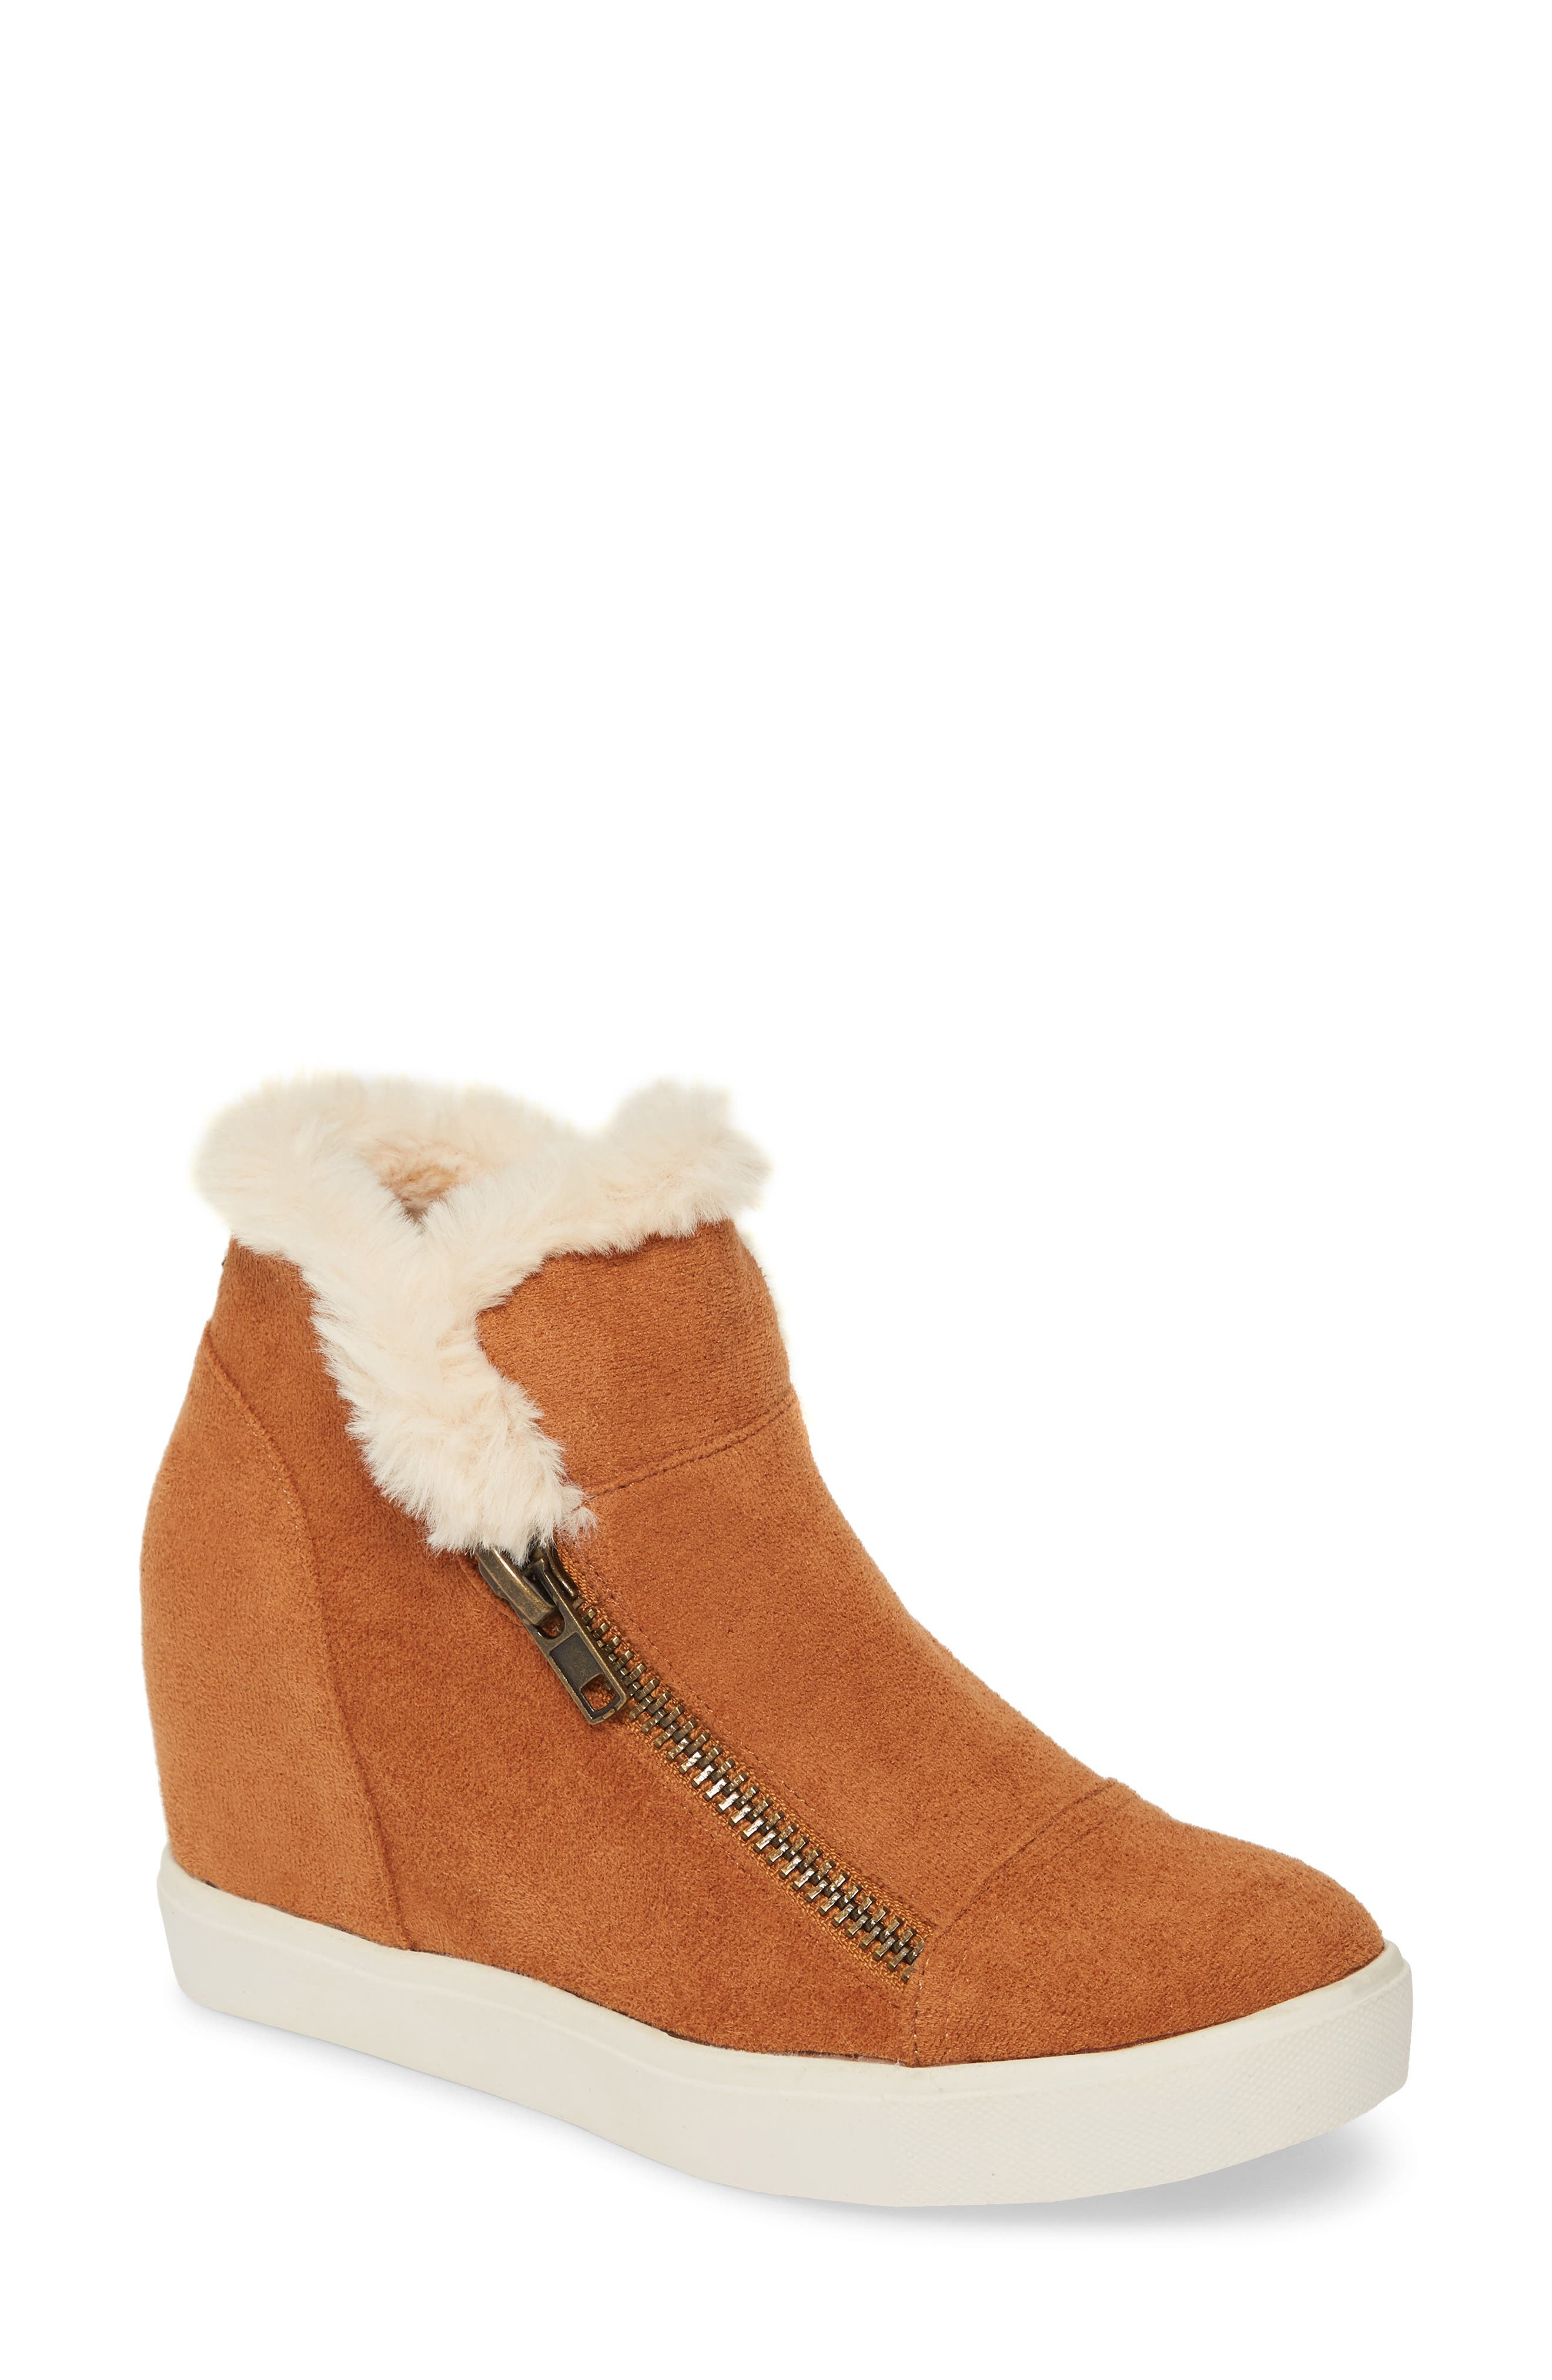 Two edgy zippers make it super easy to slip on these cozy fur-trimmed wedge sneakers and head out to take on the day. Style Name: Coconuts By Matisse Later Days Faux Fur Wedge Sneaker (Women). Style Number: 5893539 1. Available in stores.